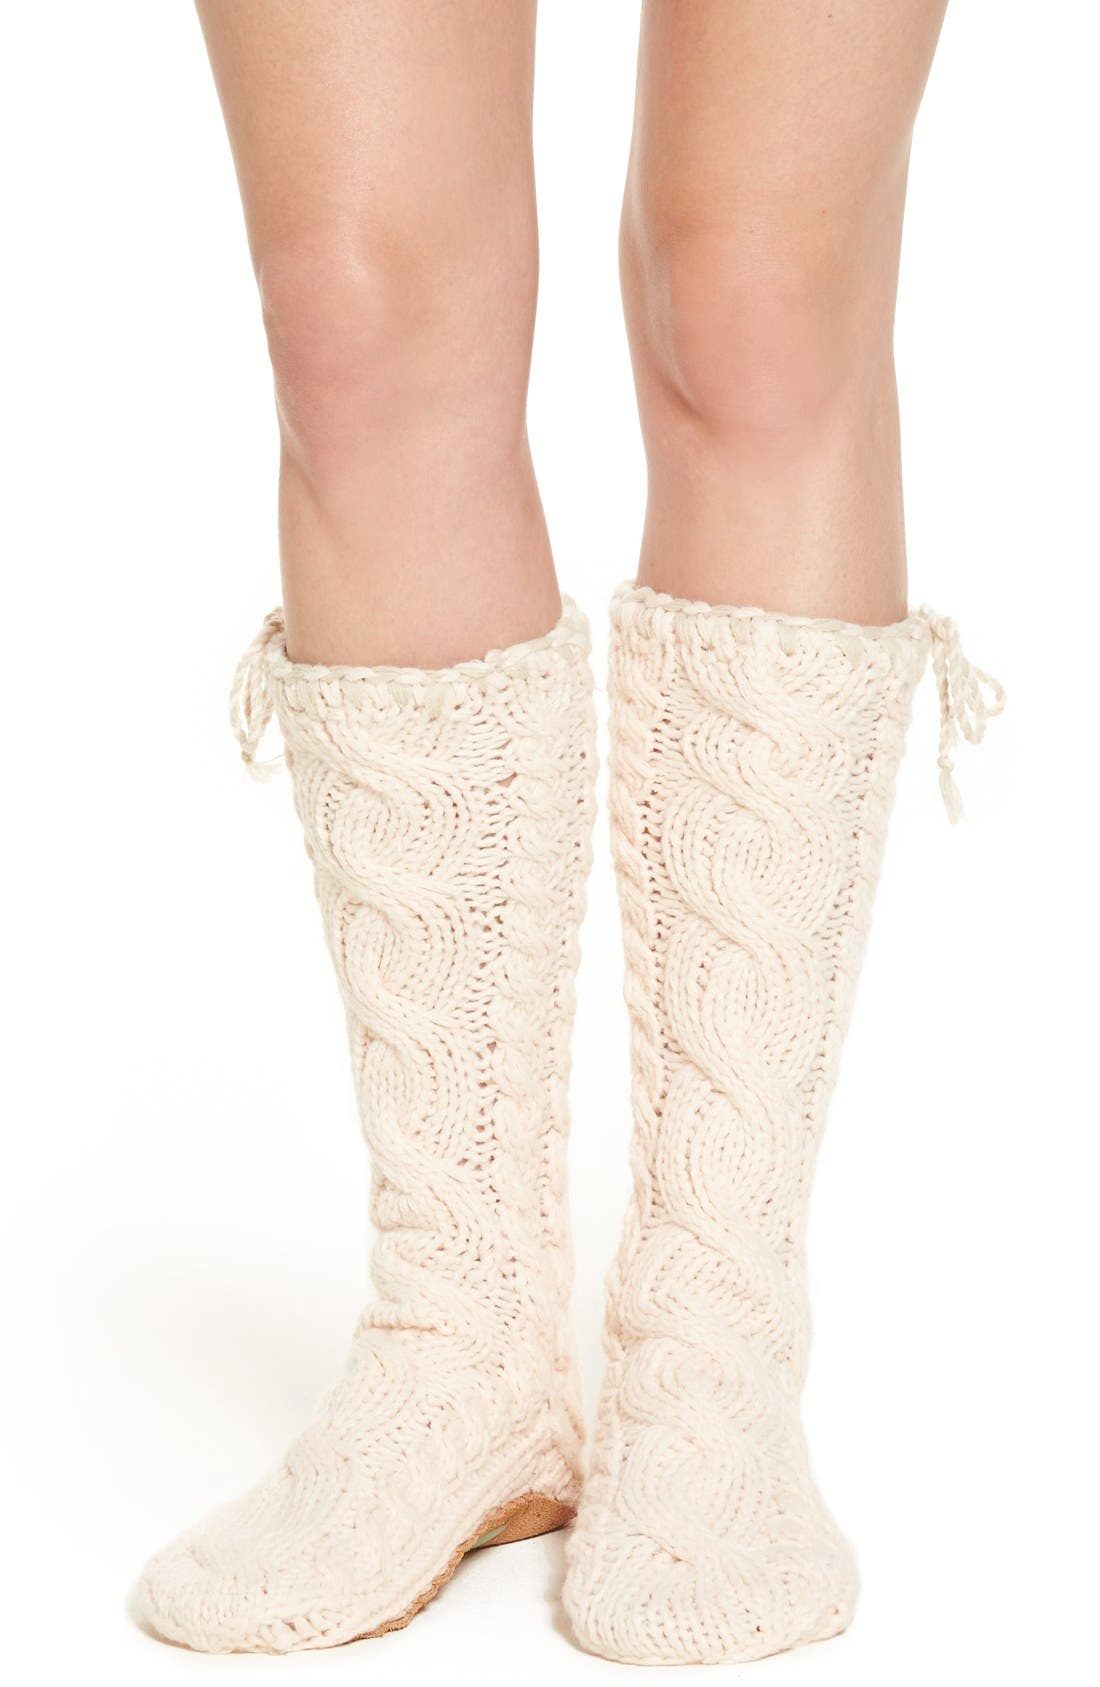 Main Image - Lemon 'Arctic' Cable Knit Knee High Slippers